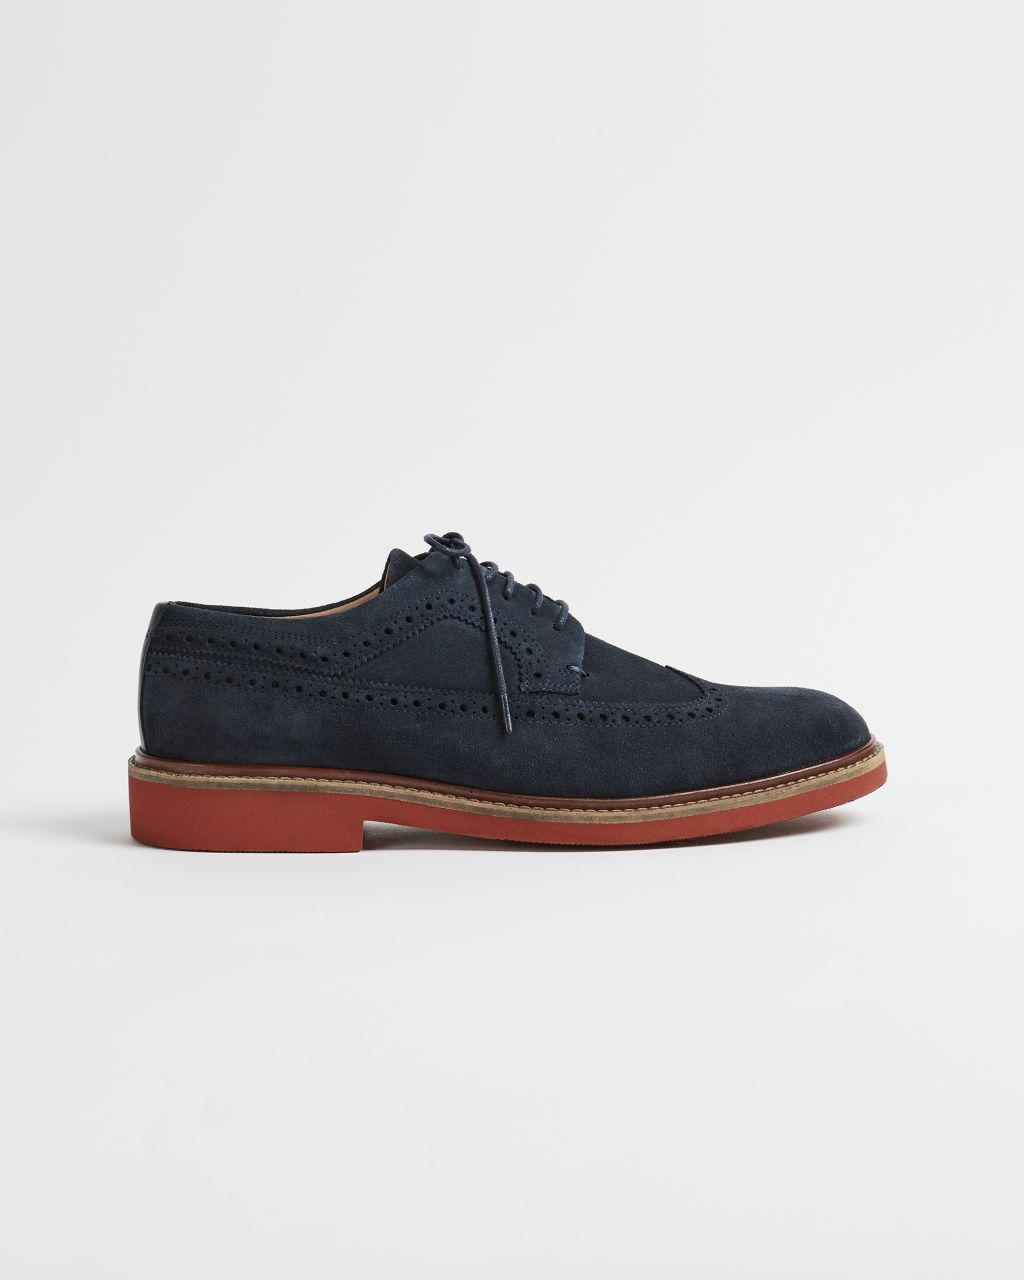 TED BAKER Smart Casual Long Wing Brogue | TED BAKER SALE